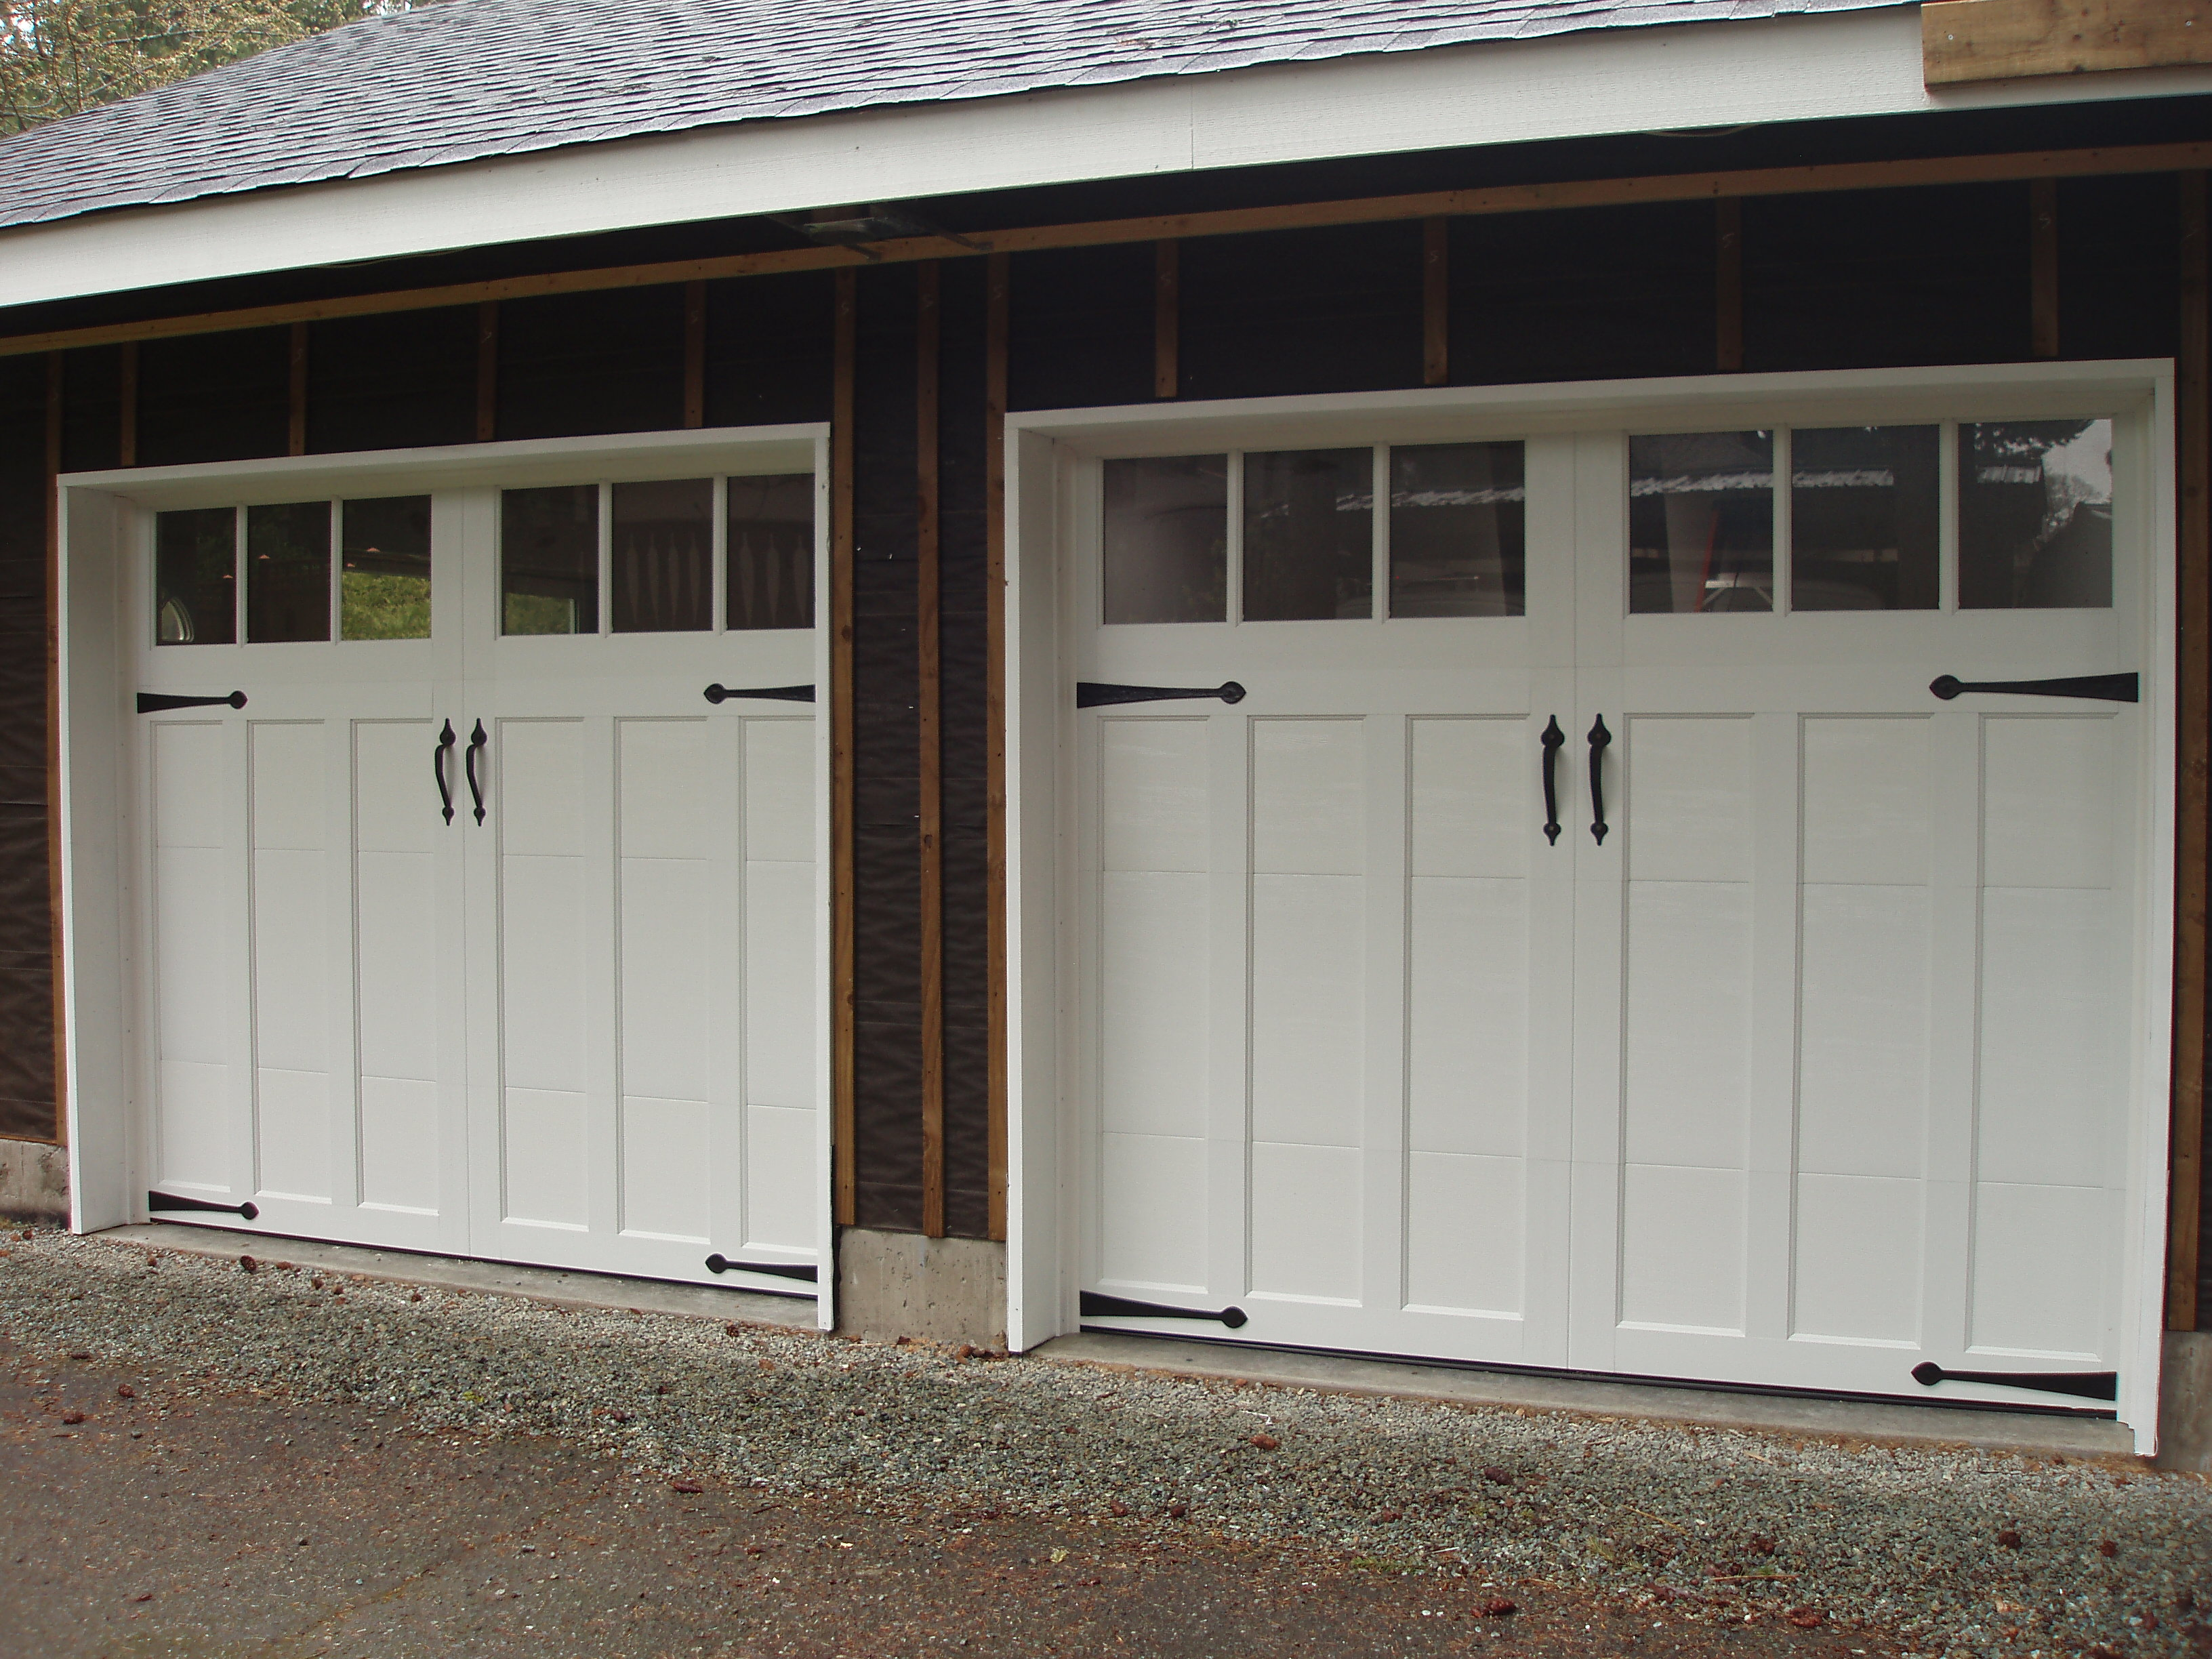 2448 #5F4C3E CC10 Clopay Coachman Door Model 13 With Rec 13 Glass With Decorative  wallpaper Coachman Collection Garage Doors 36153264